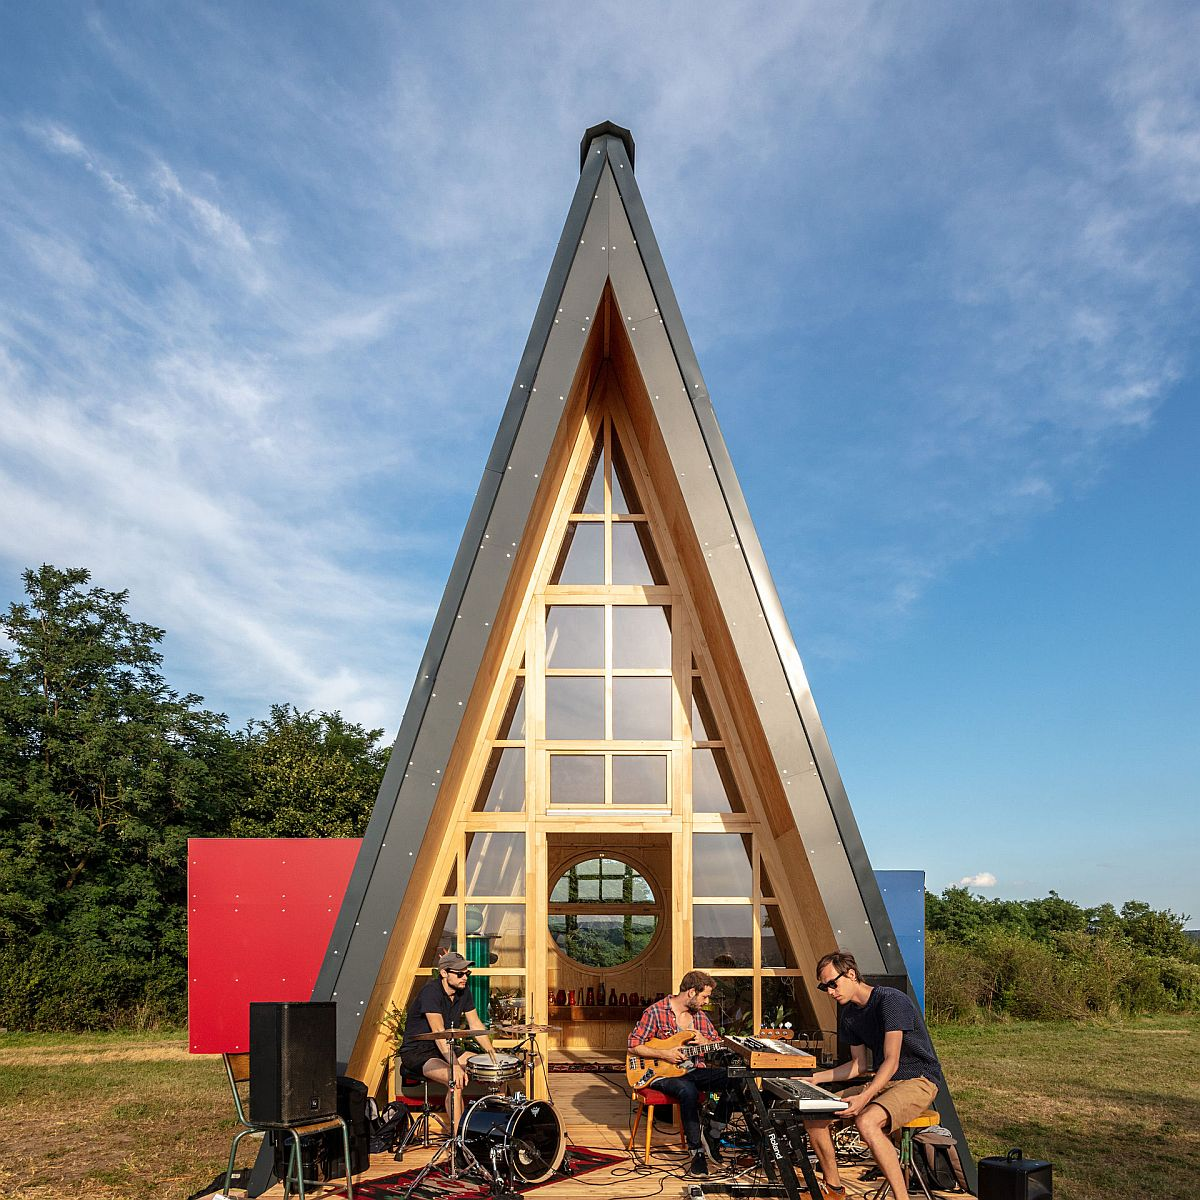 Sturdy-and-space-savvy-design-of-the-cabin-with-A-frame-makes-an-instant-visual-impact-24815